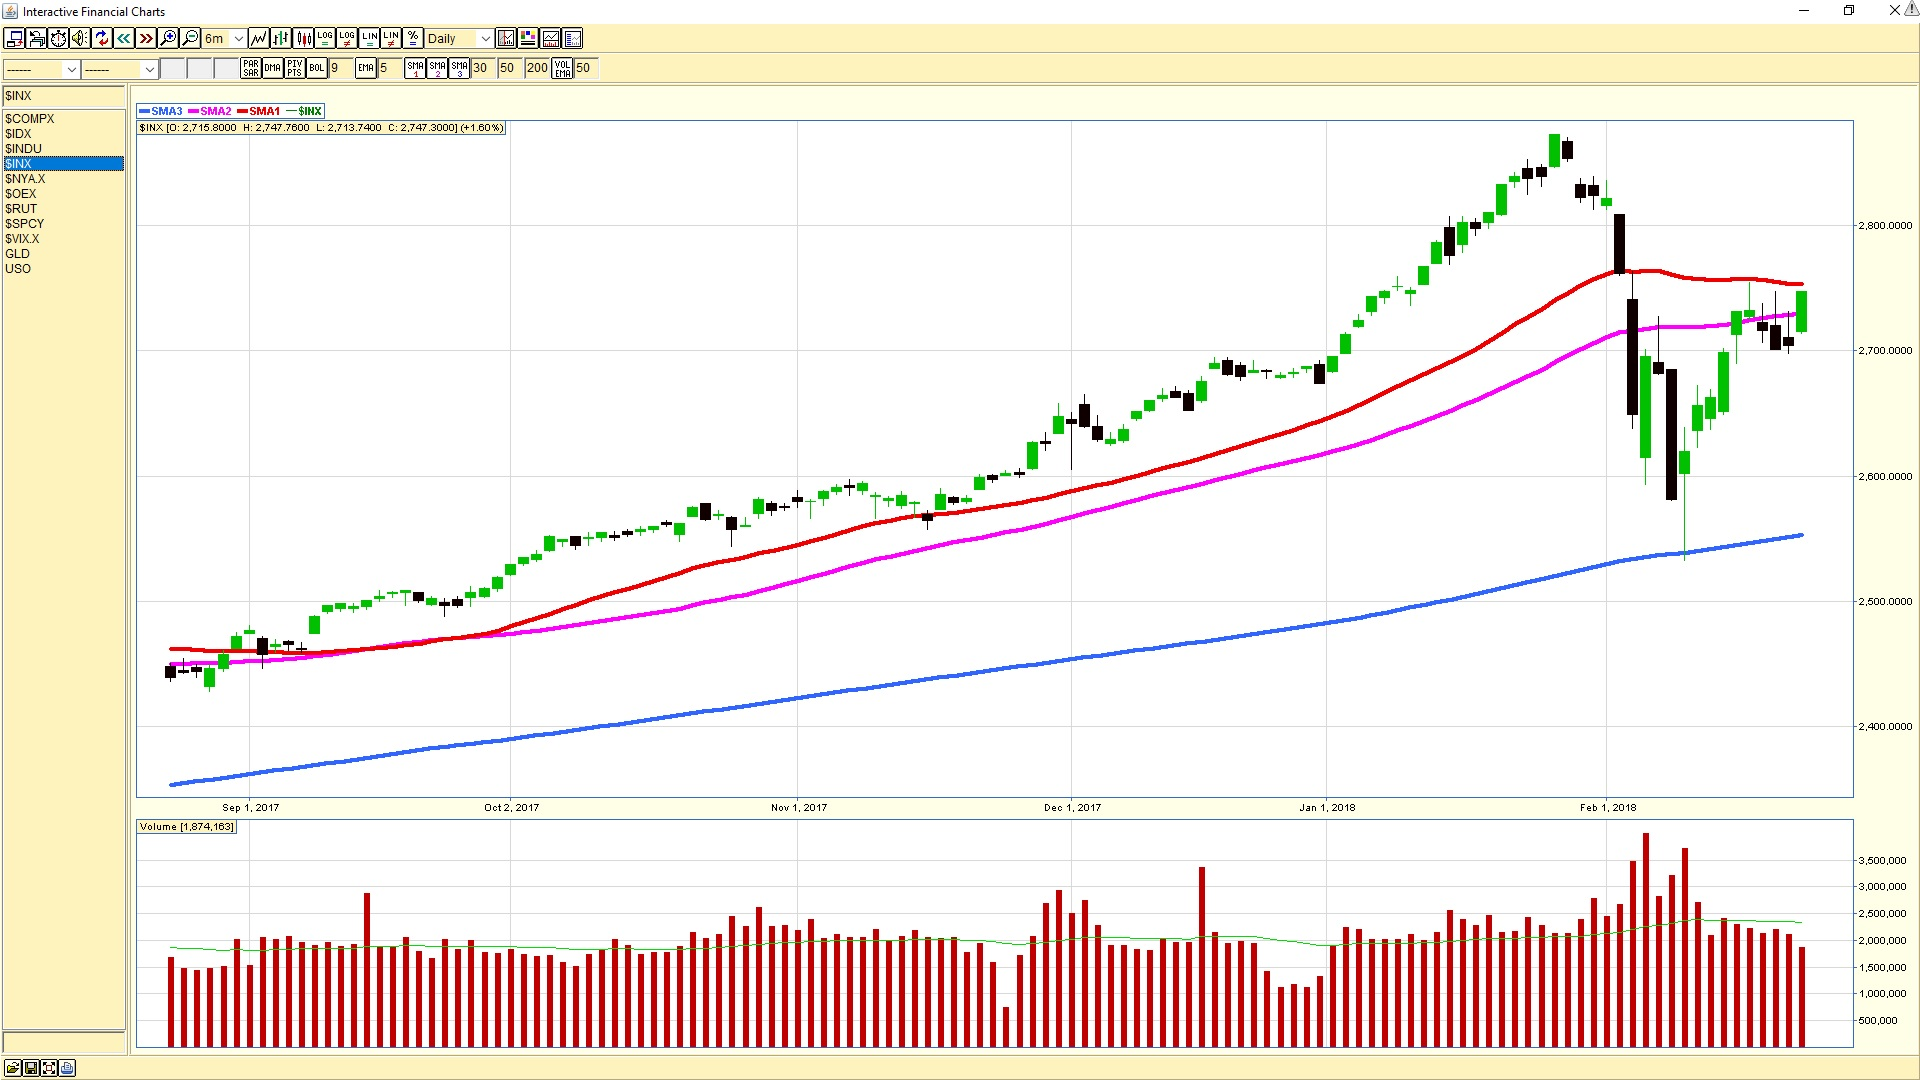 S&P 500 daily chart